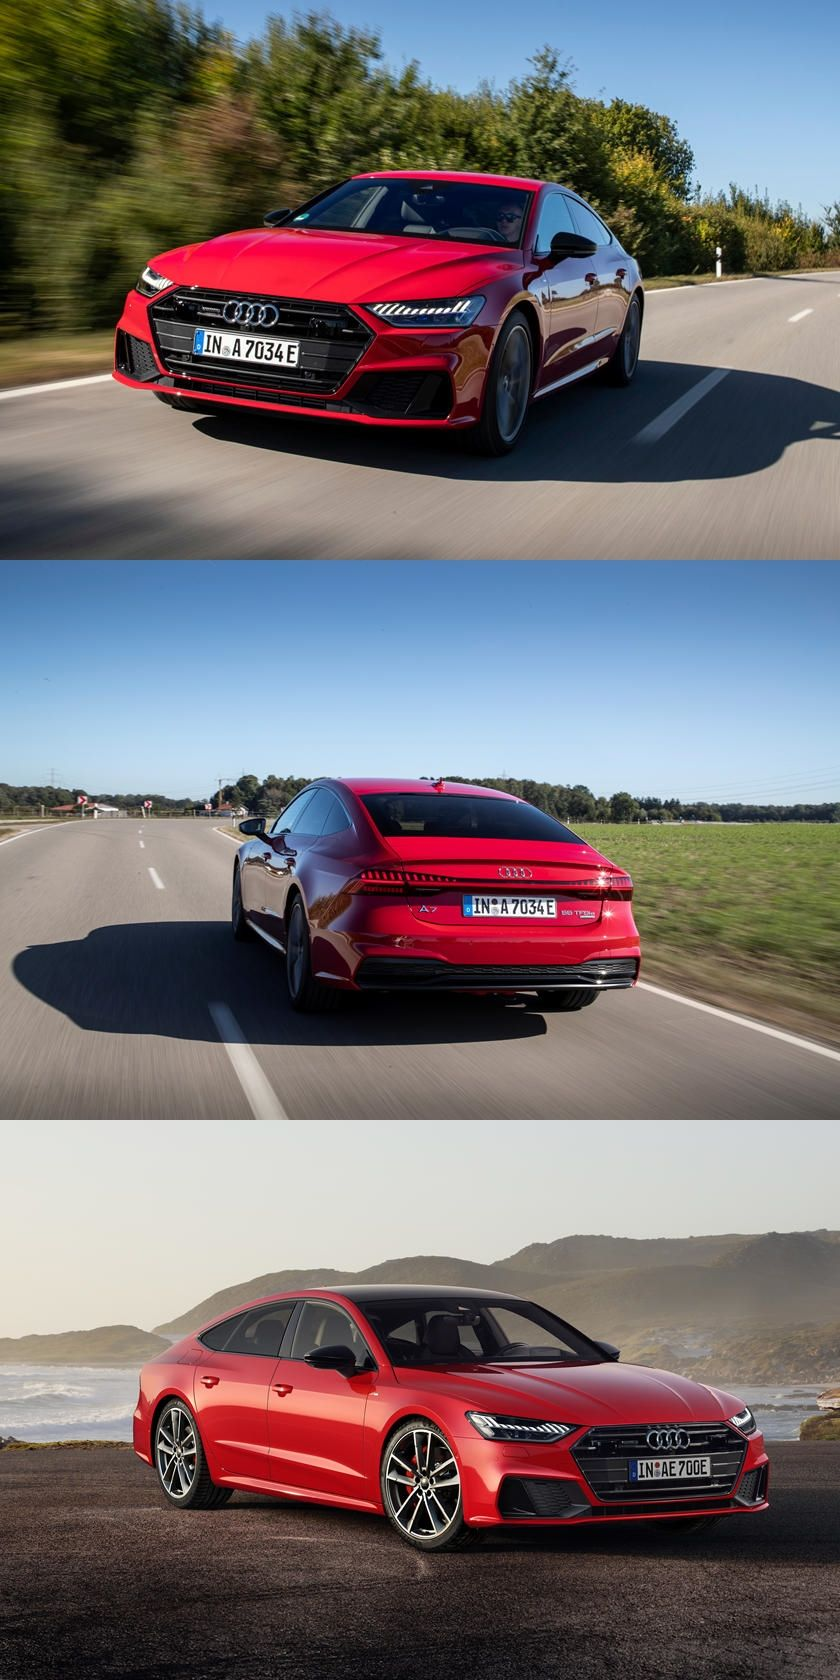 2021 Audi A7 Hybrid Arrives With Tesla Fighting Powertrain And It S More Powerful Than The Base V6 In 2020 Audi A7 Audi Tesla